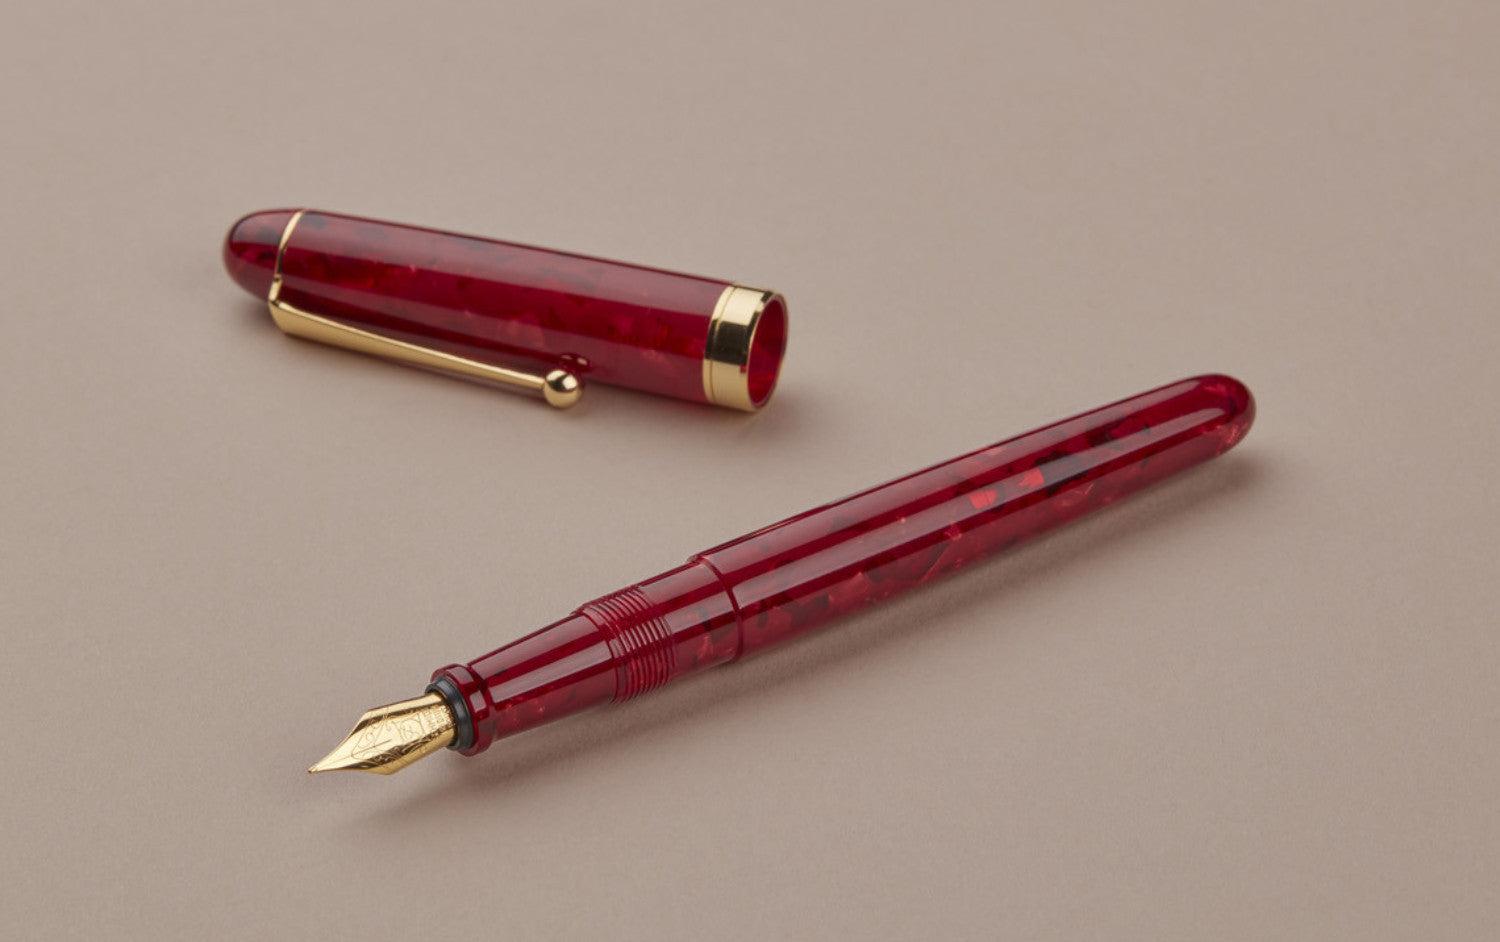 Ohnishi Seisakusho Red Marble Acetate Fountain Pen